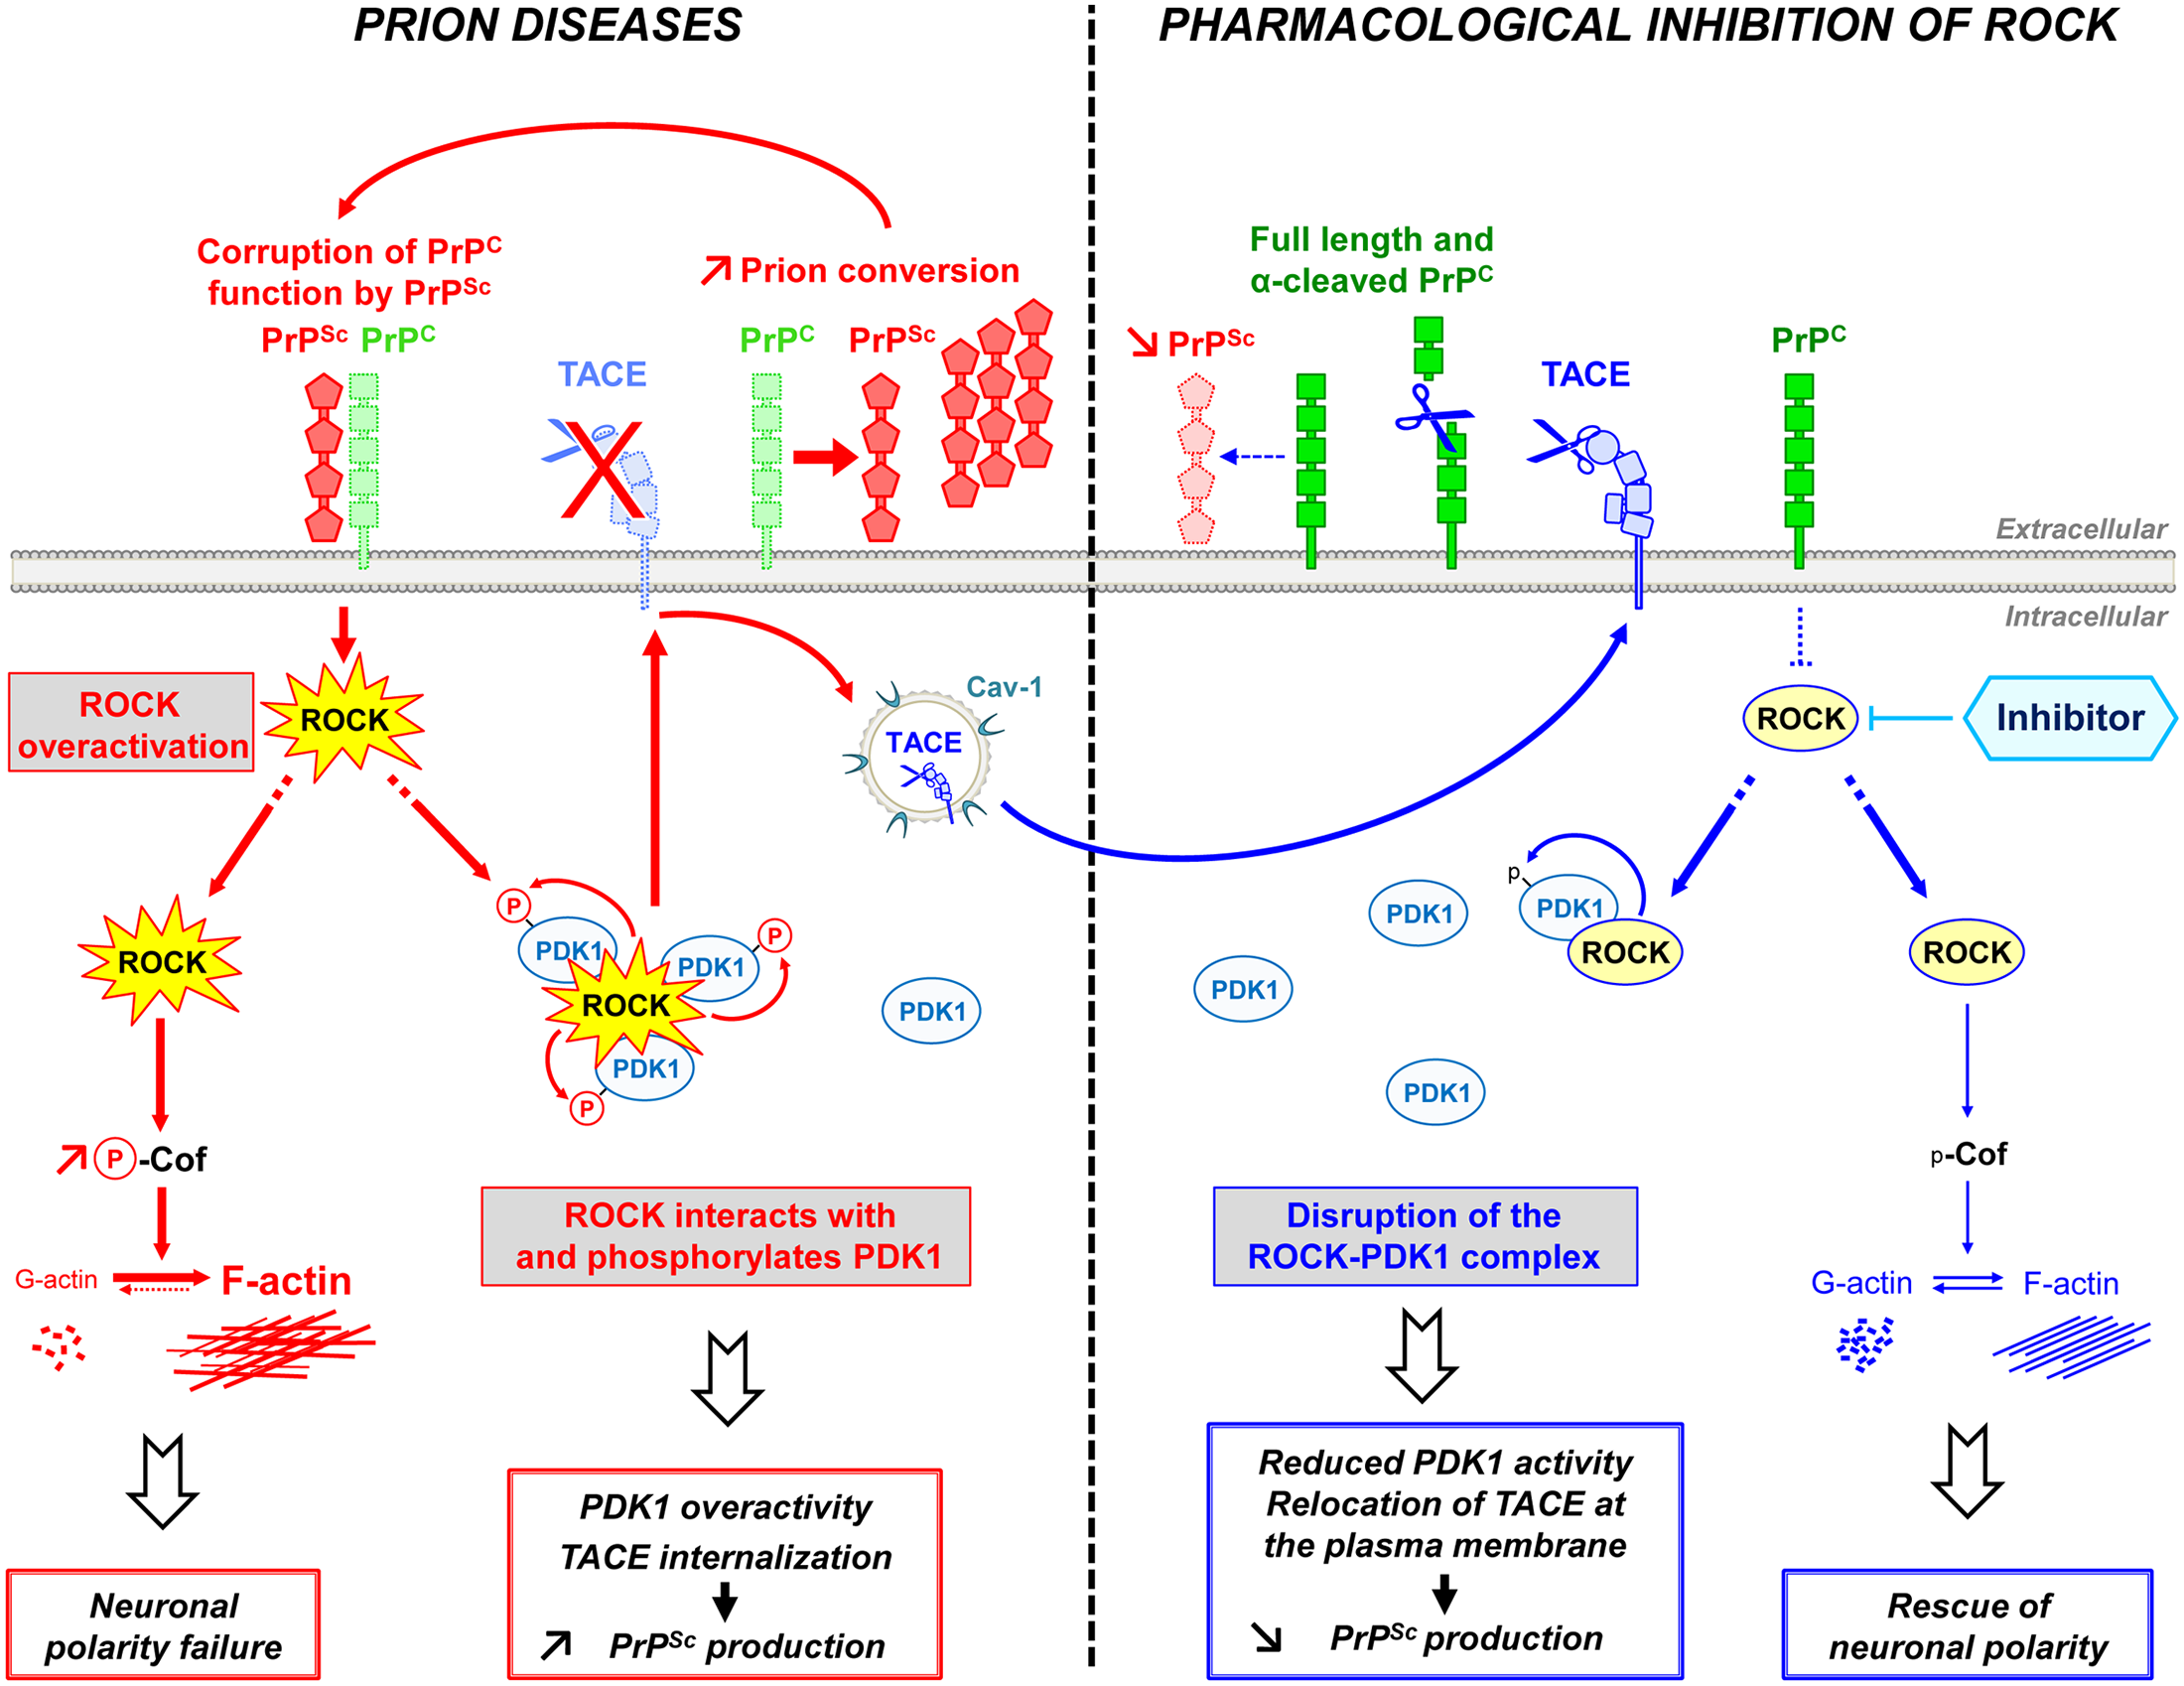 Schematic representation of ROCK dysregulation in prion-infected cells and incidence of ROCK overactivity on neuritogenesis and PrP<sup>Sc</sup> production.